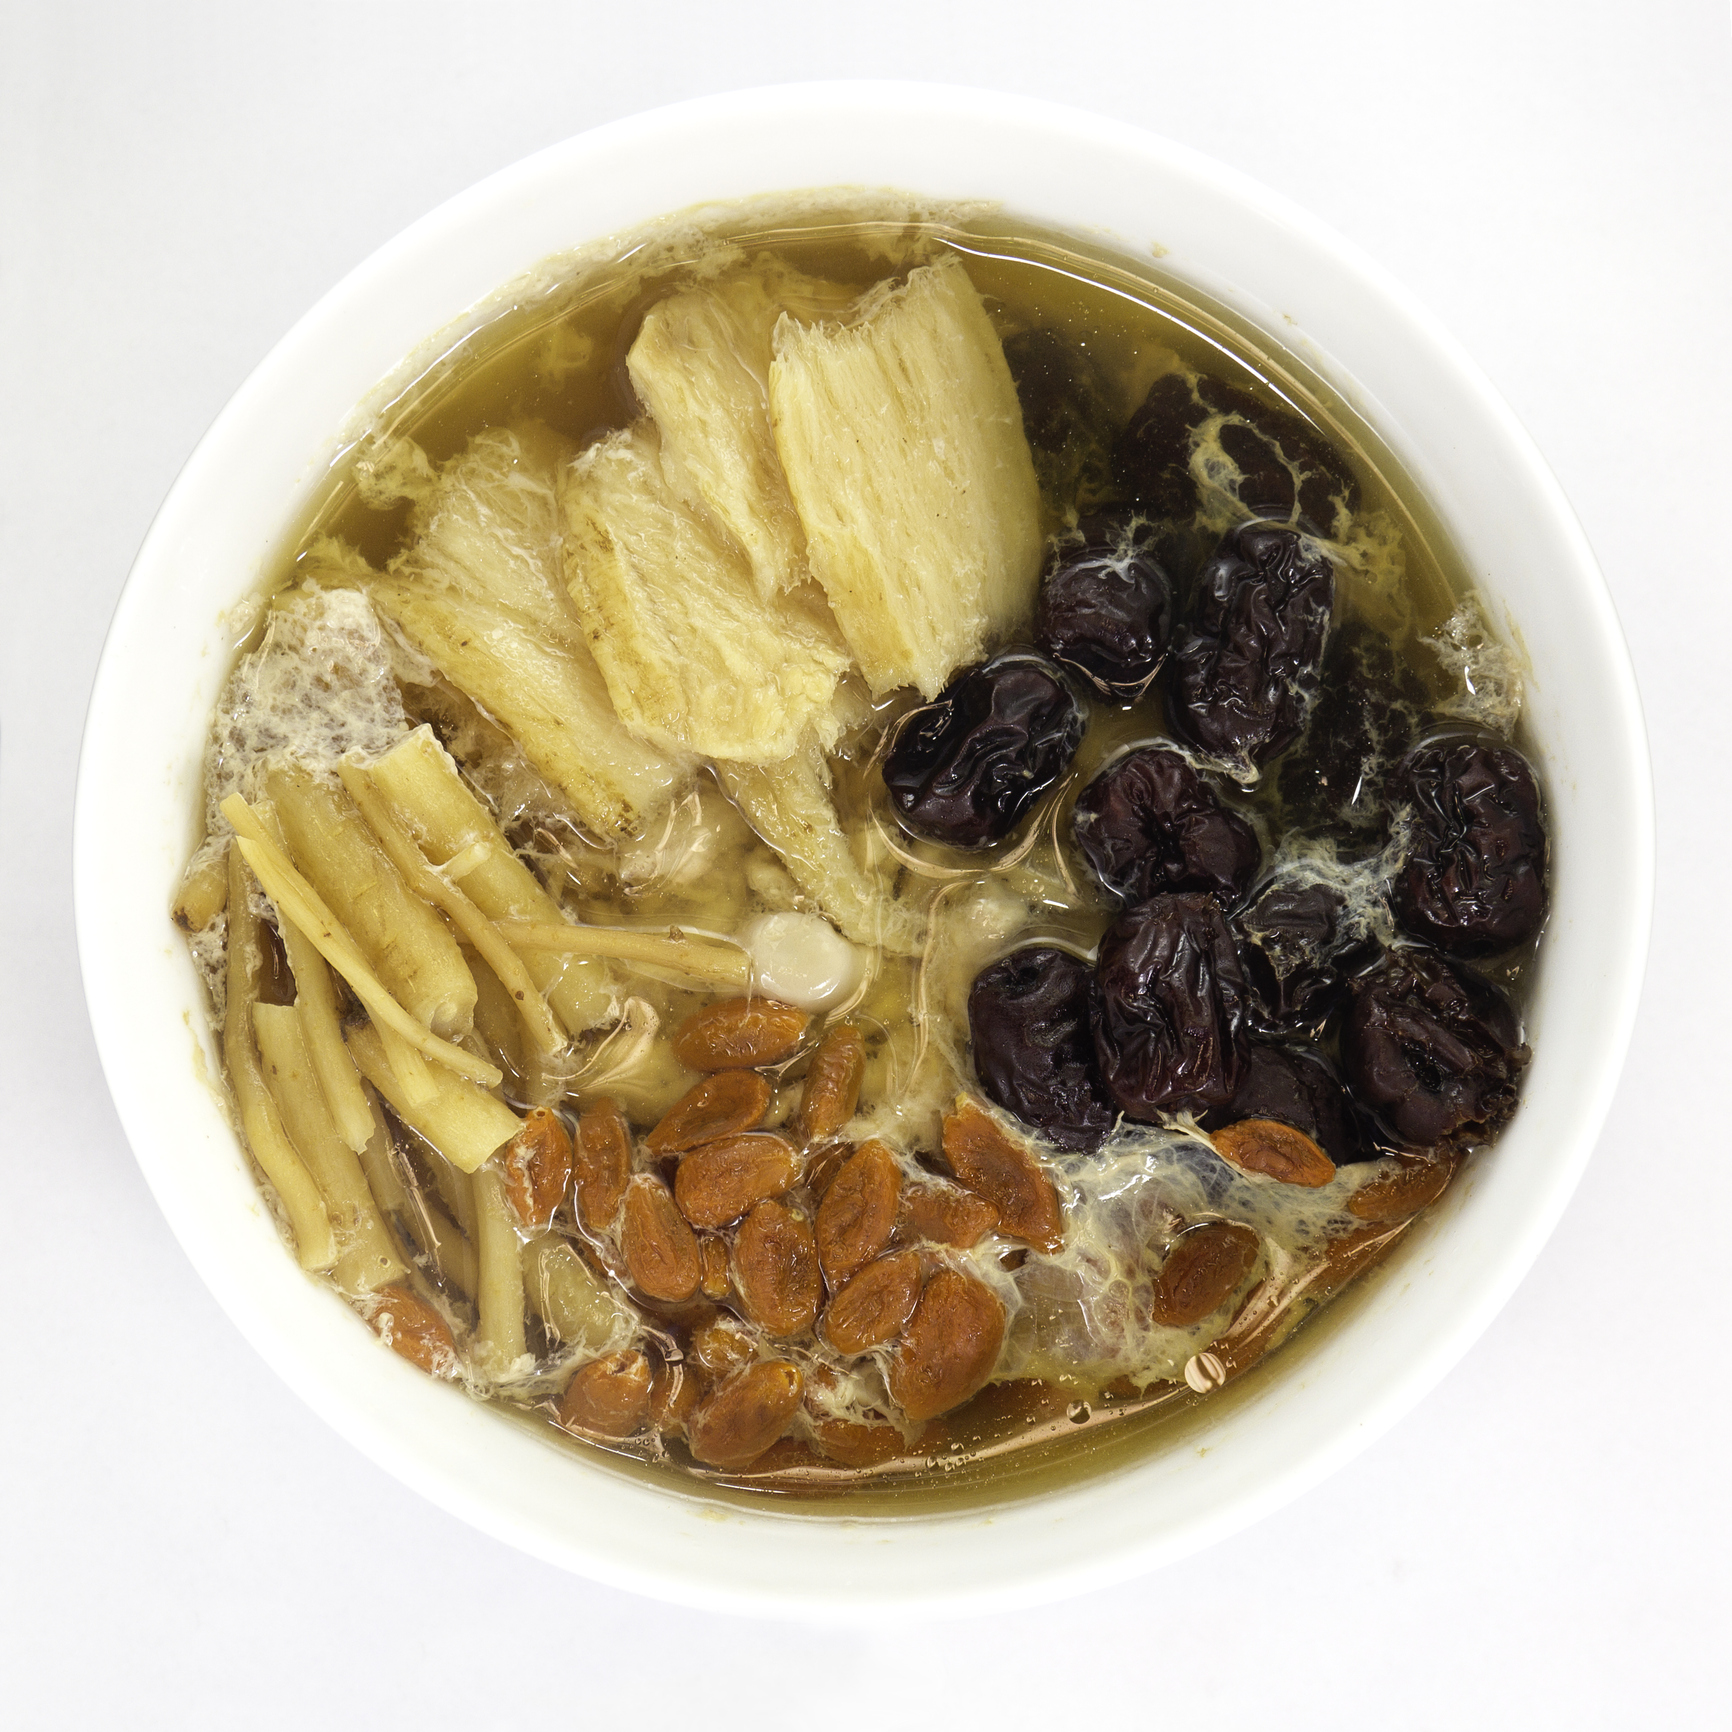 Nutrition and traditional foods are strongly associated with herbal therapy in China. Many foods rest comfortably within Chinese culture as suitable/necessary to eat for certain conditions, and necessary to have during seasonal changes. The food culture of China is deep and rich; the knowledge embedded within it travels deeper and is richer still.